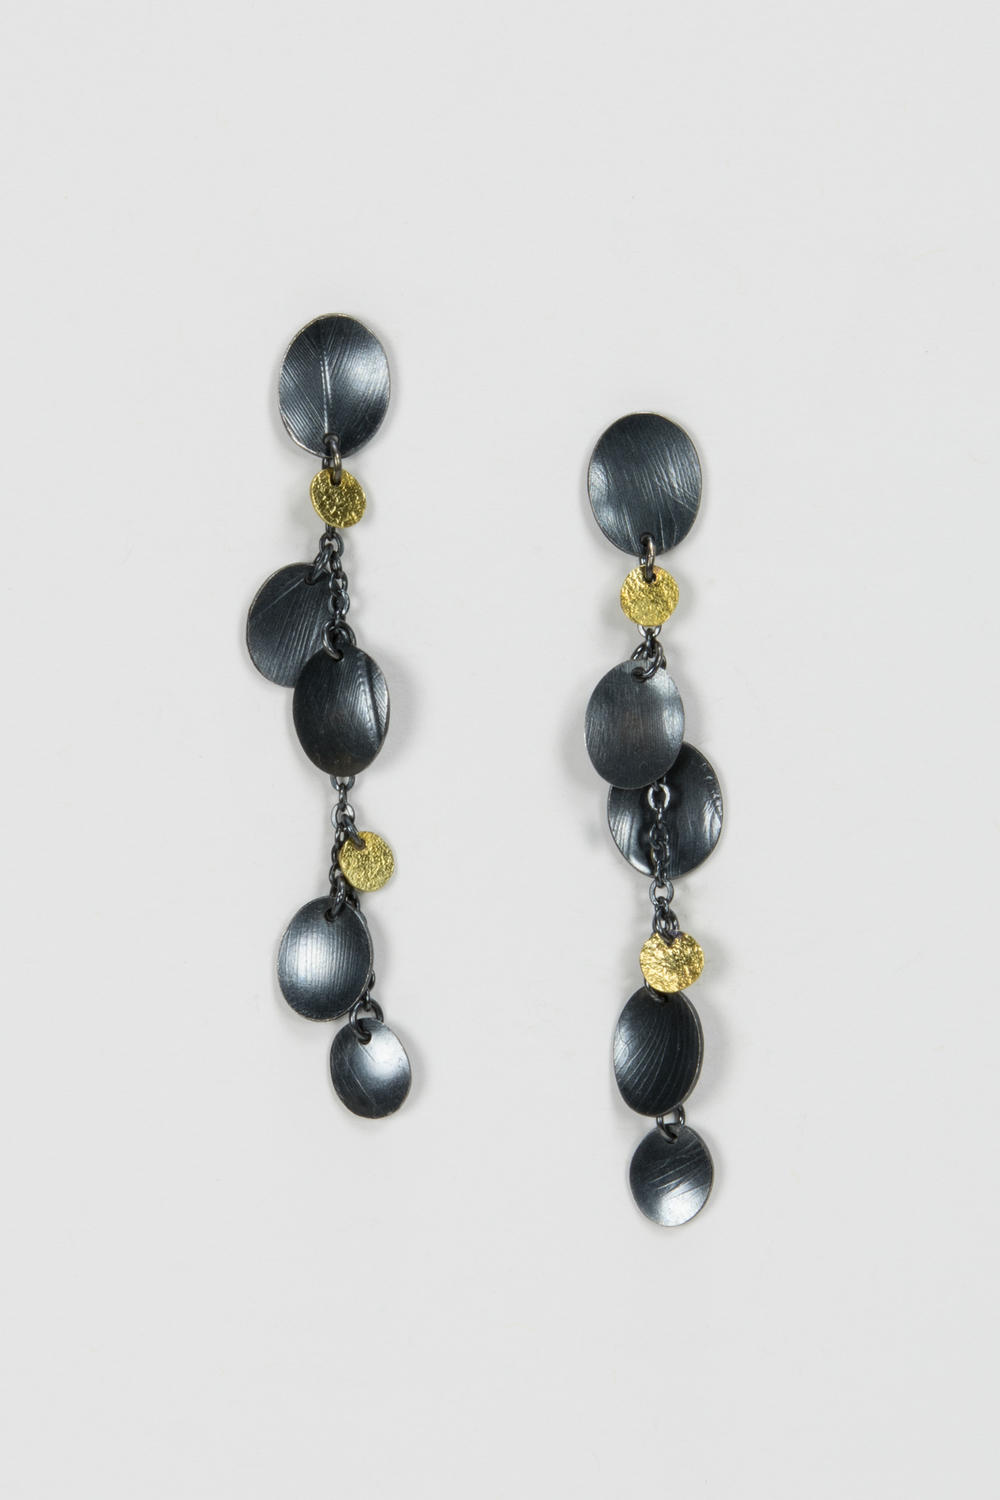 medium dangle post earrings - oxidized sterling and 18ky gold - 580.00